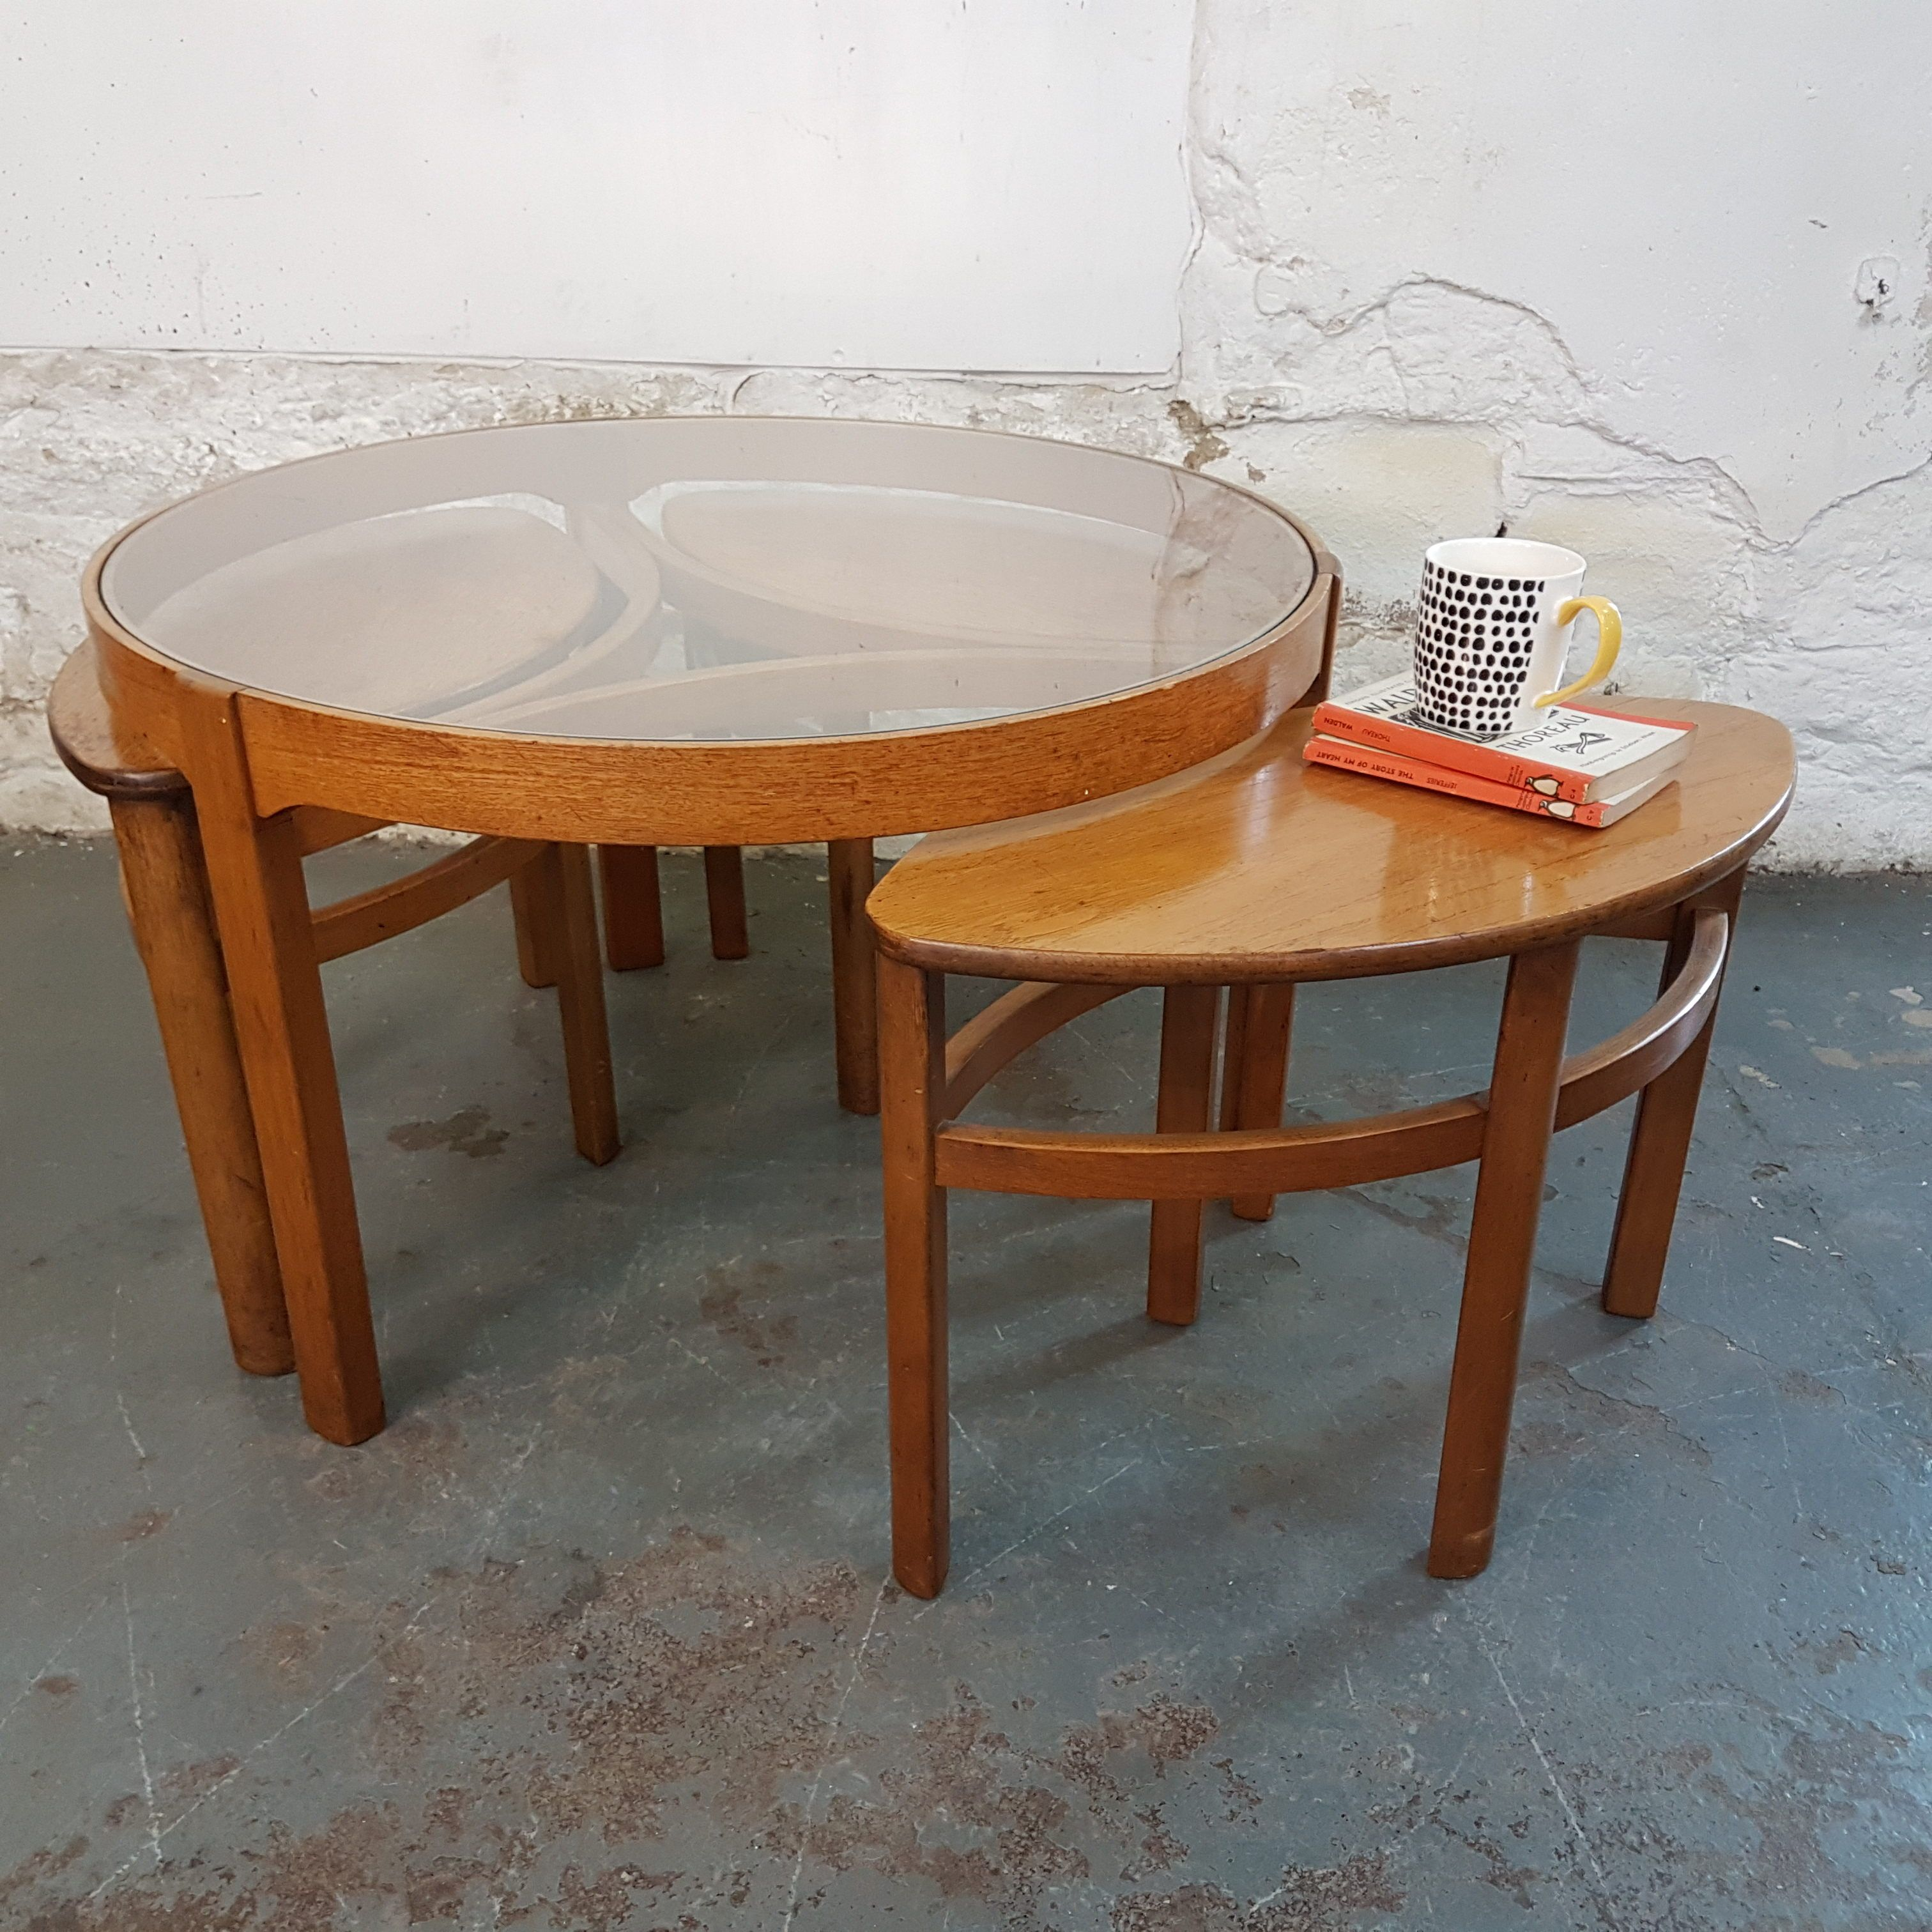 1960s Nathan Teak And Glass Coffee Table With 3 Hidden Tables 125 00 Midcentury Retro Midcenturymo Mid Century Coffee Table Coffee Table Glass Coffee Table